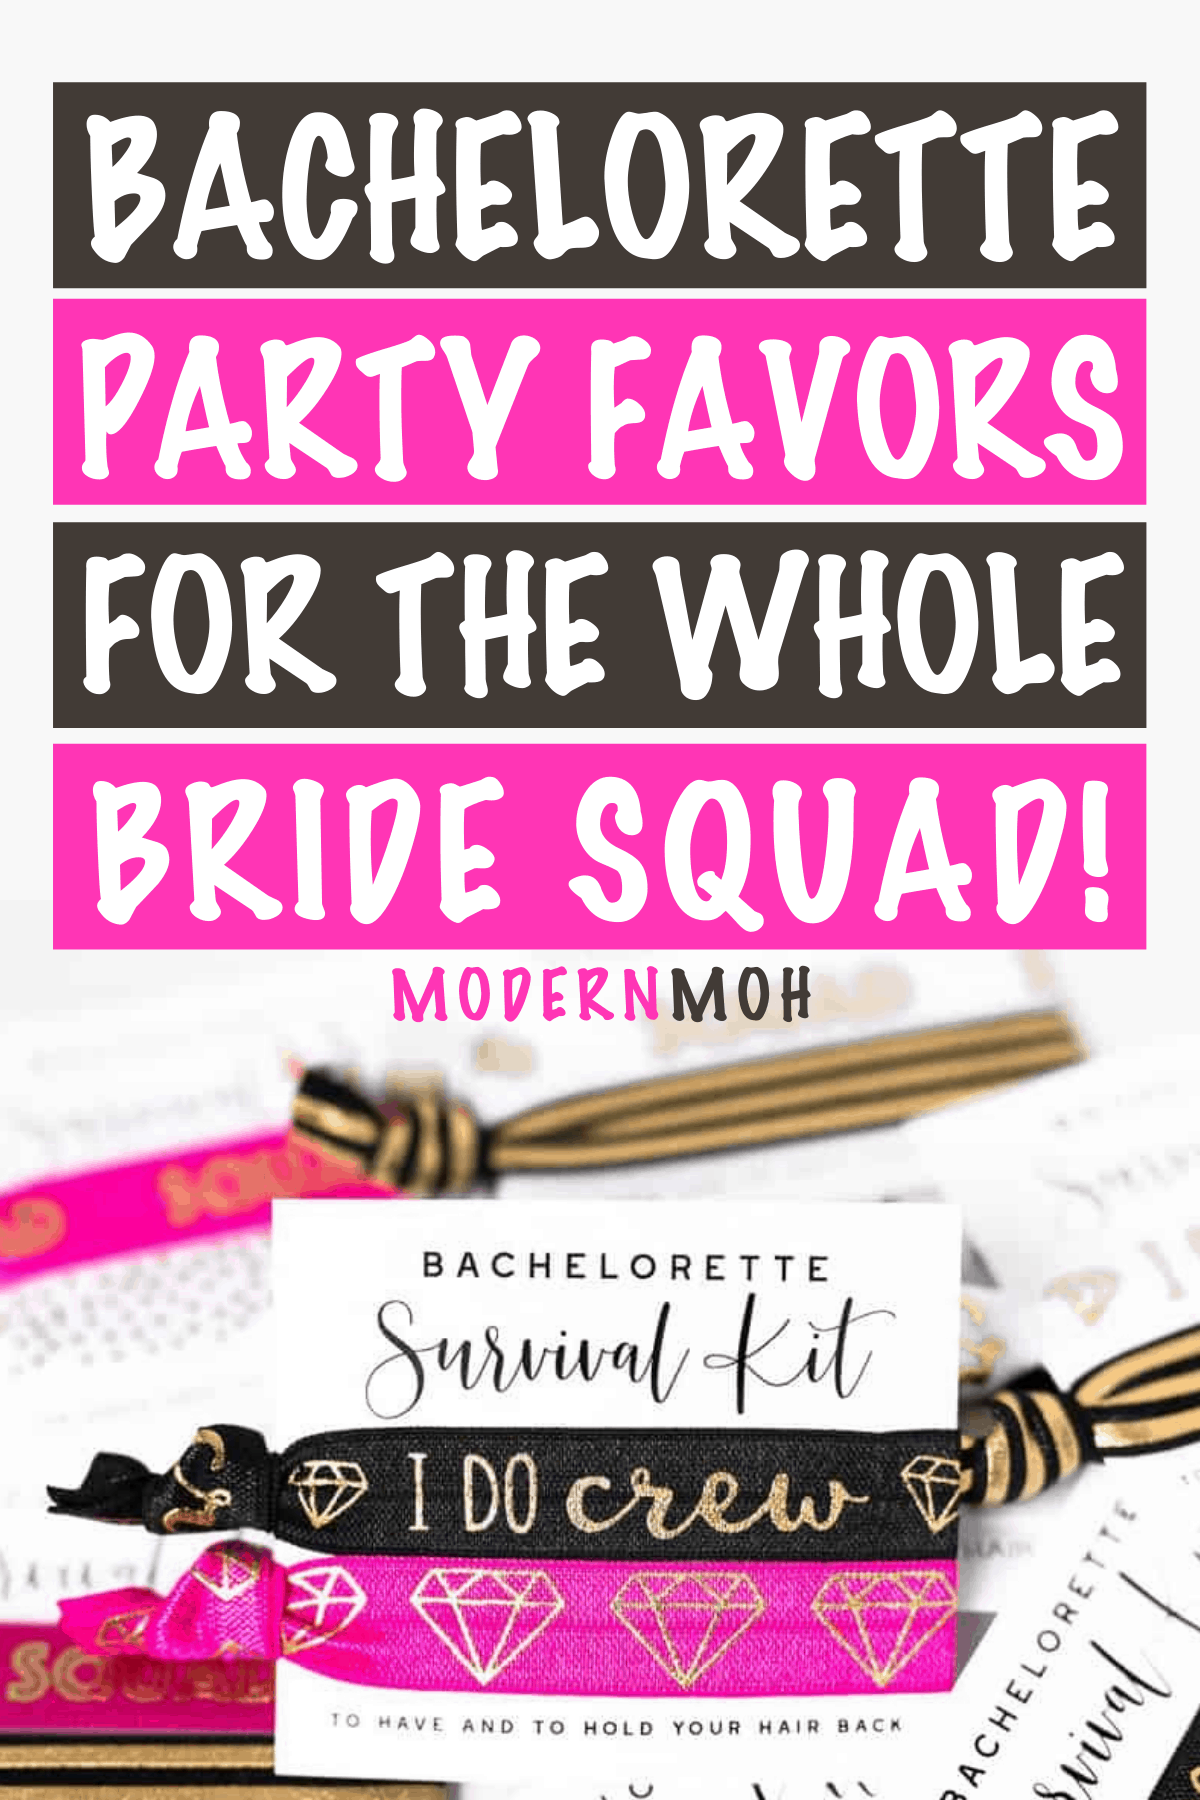 10 Bachelorette Party Favors for Your Girls Weekend